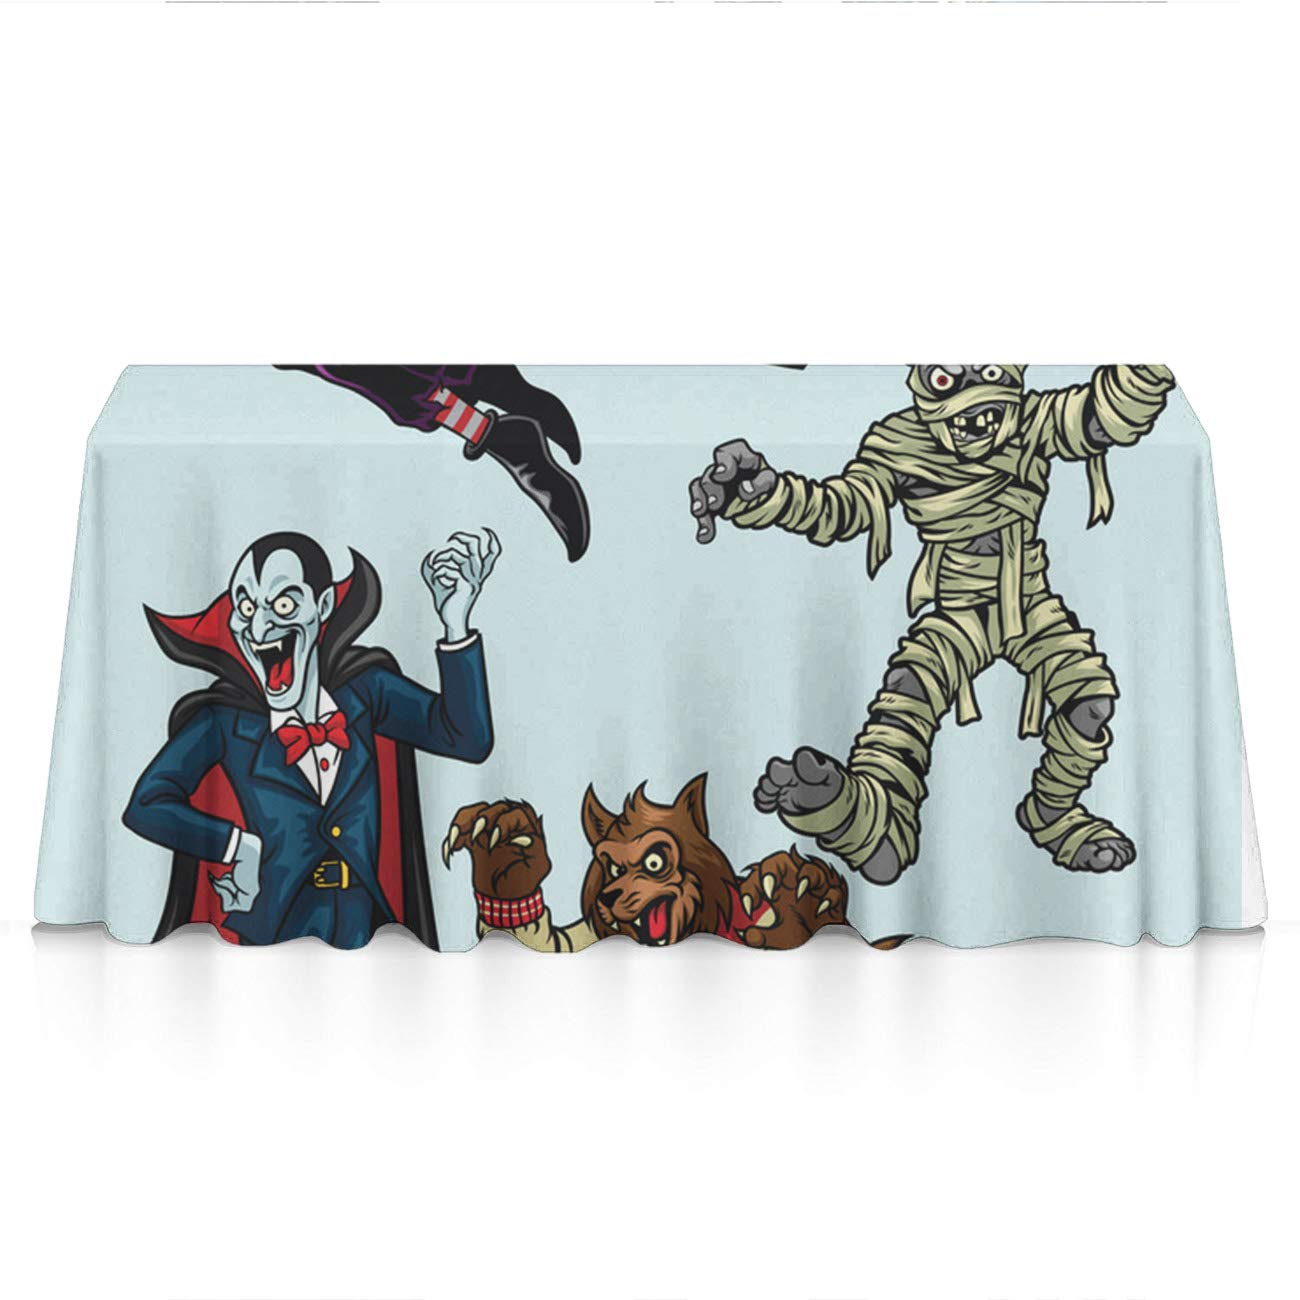 KYWYN Happy Halloween Party Premium Tablecloths Home Decor Extra Large Rectangle Tablecloth Tapestry 60x84 inch, Perfect for Buffet Table, Parties, Patio, Holiday Dinner, Wedding,Picnic